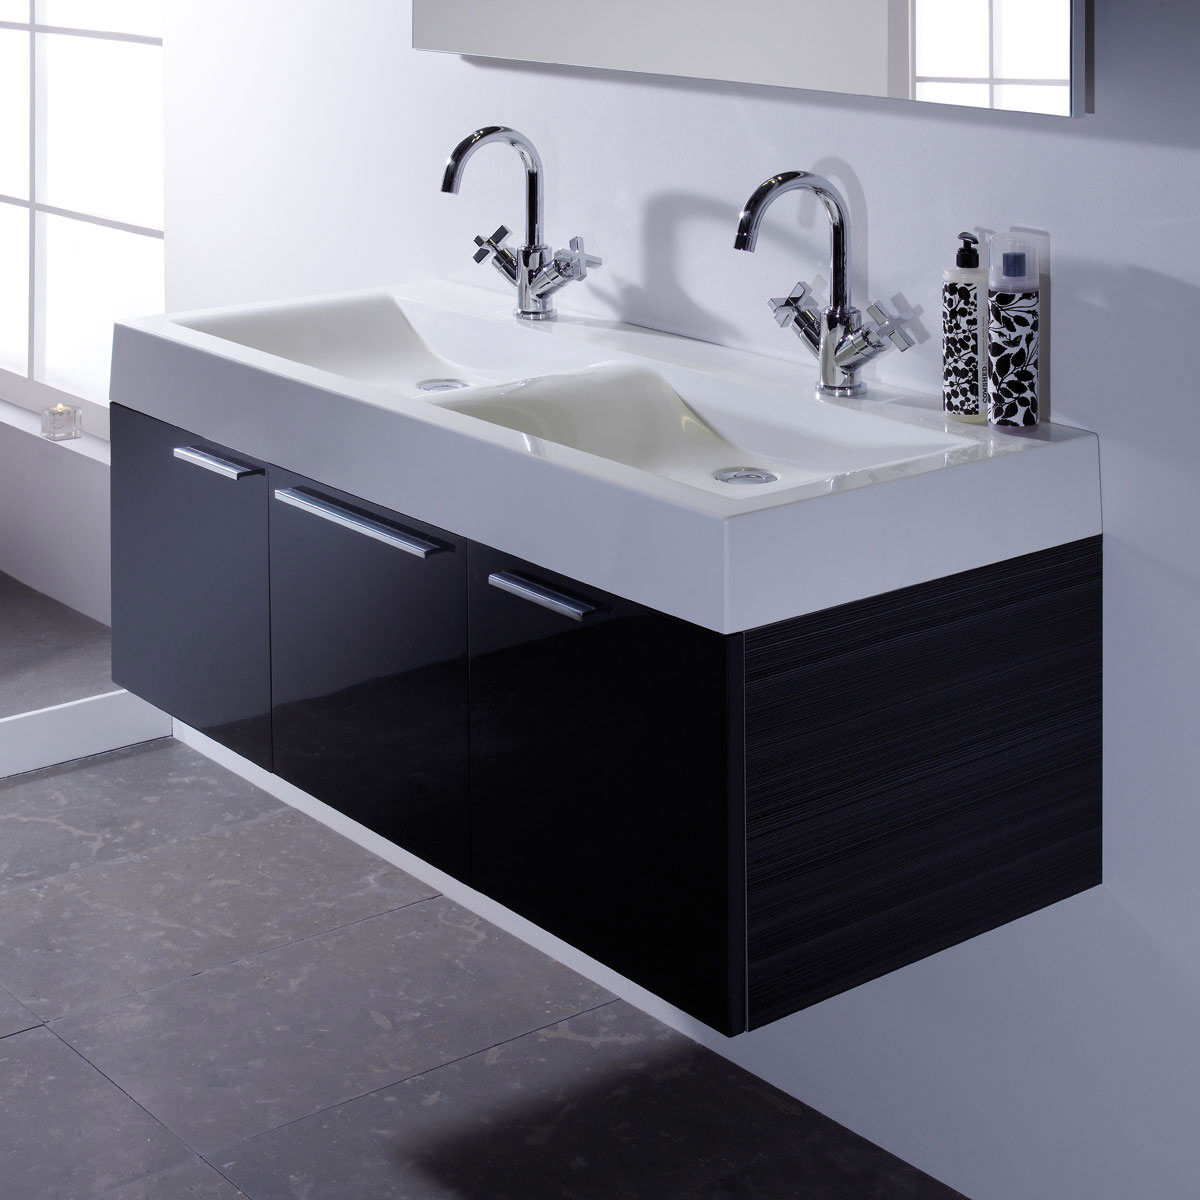 Bathroom Double Sink Vanity Units. Roper Rhodes Envy 1200mm Double Wall Mounted Unit Anthracite And Basin